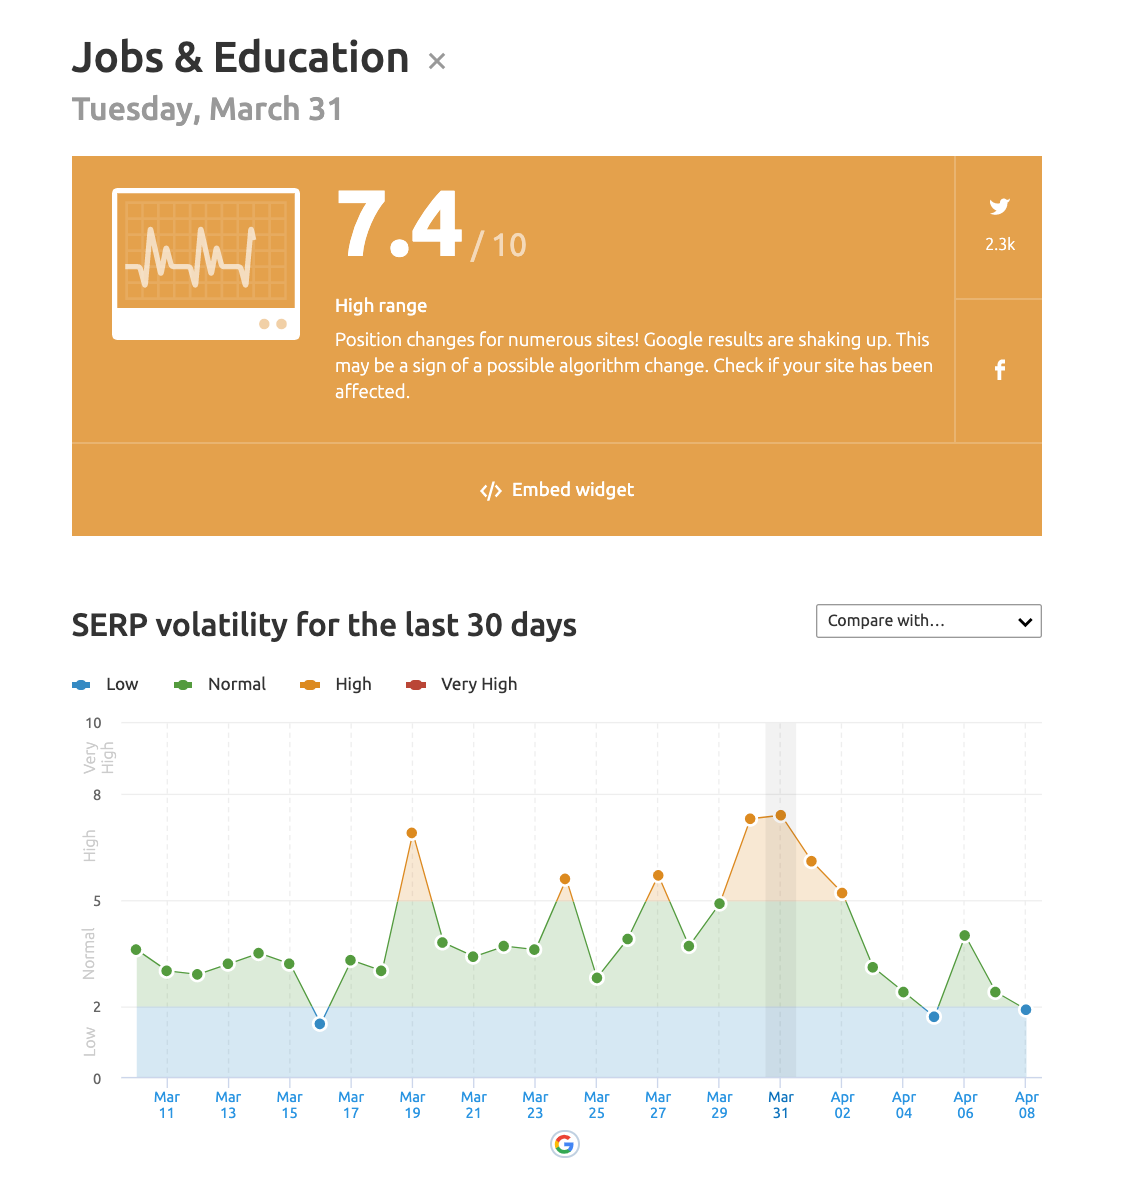 Jobs and education serp volatility changes during COVID-19